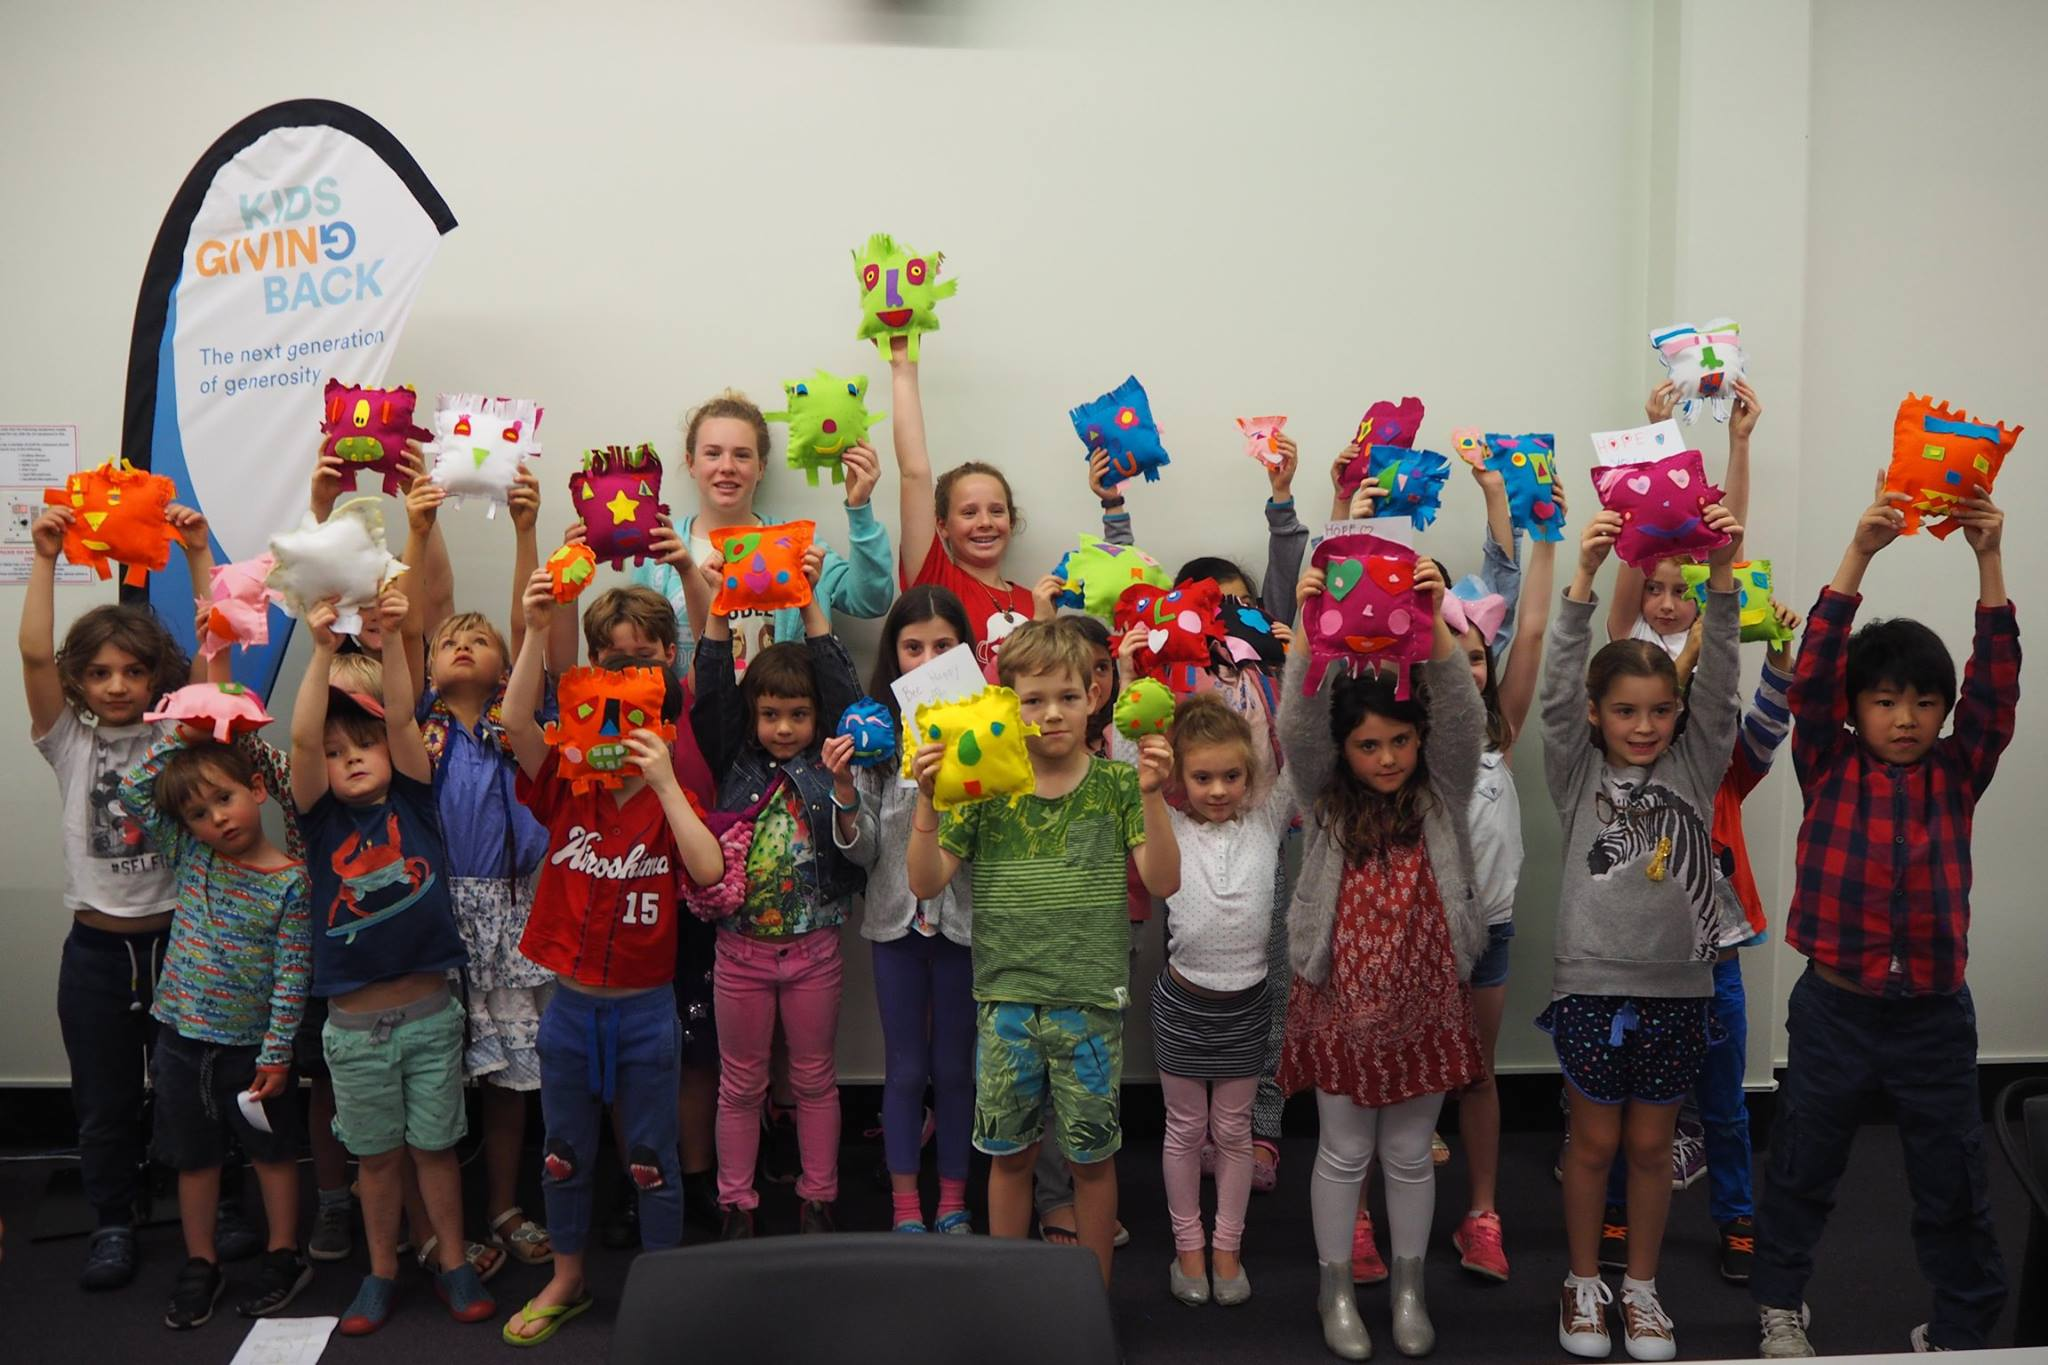 Sew4Good – kids make 'softies' for kids living in shelters